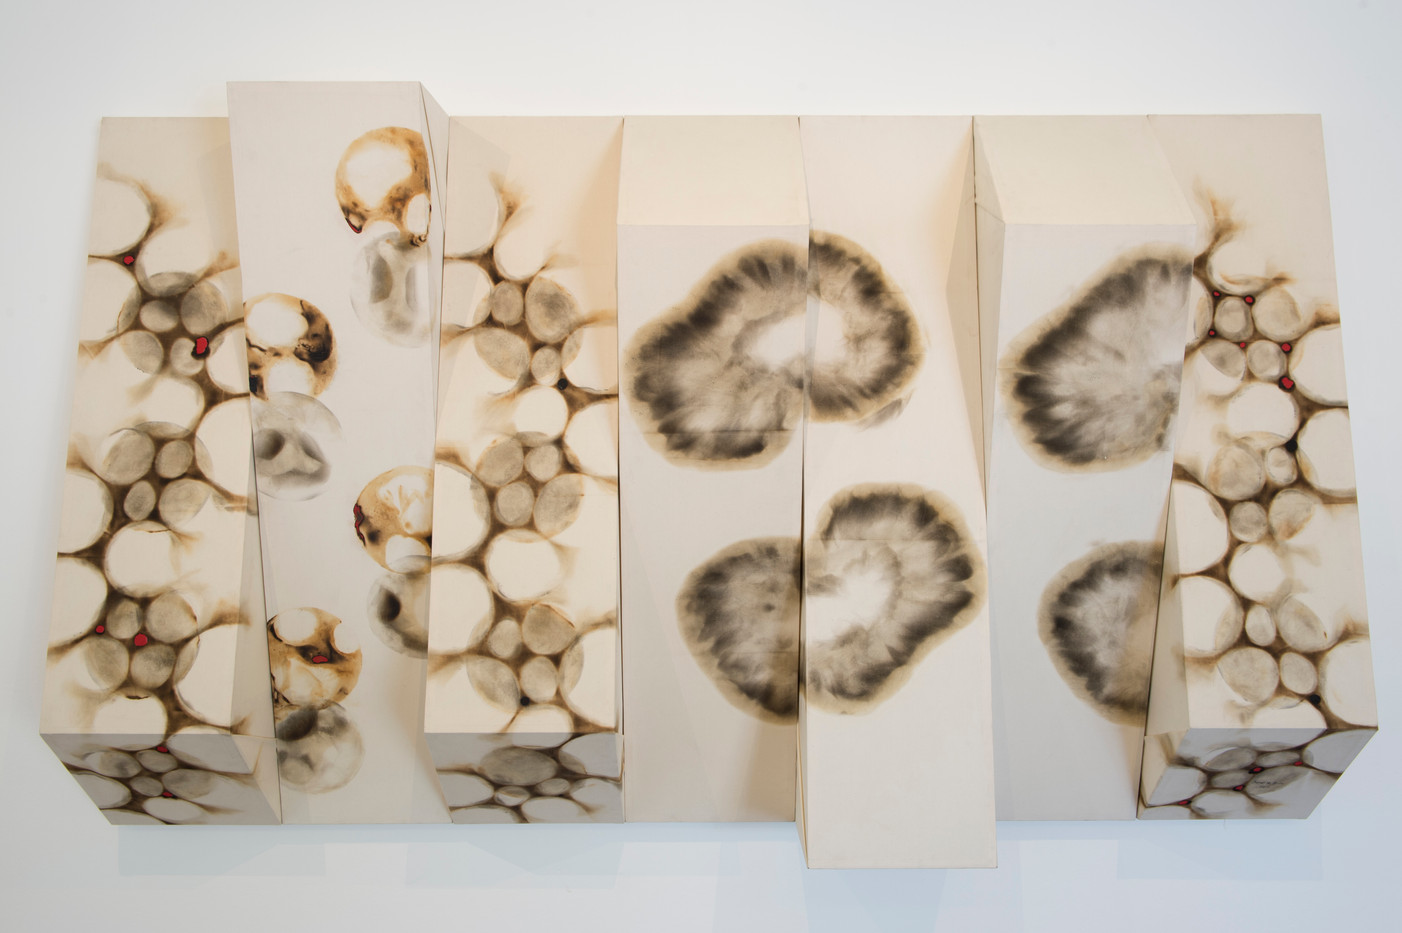 Sandile Zulu | Spinal Diagnoses | 2014 | Fire, Water, Air and Earth on Canvas | 145 x 287.5 x 32 cm